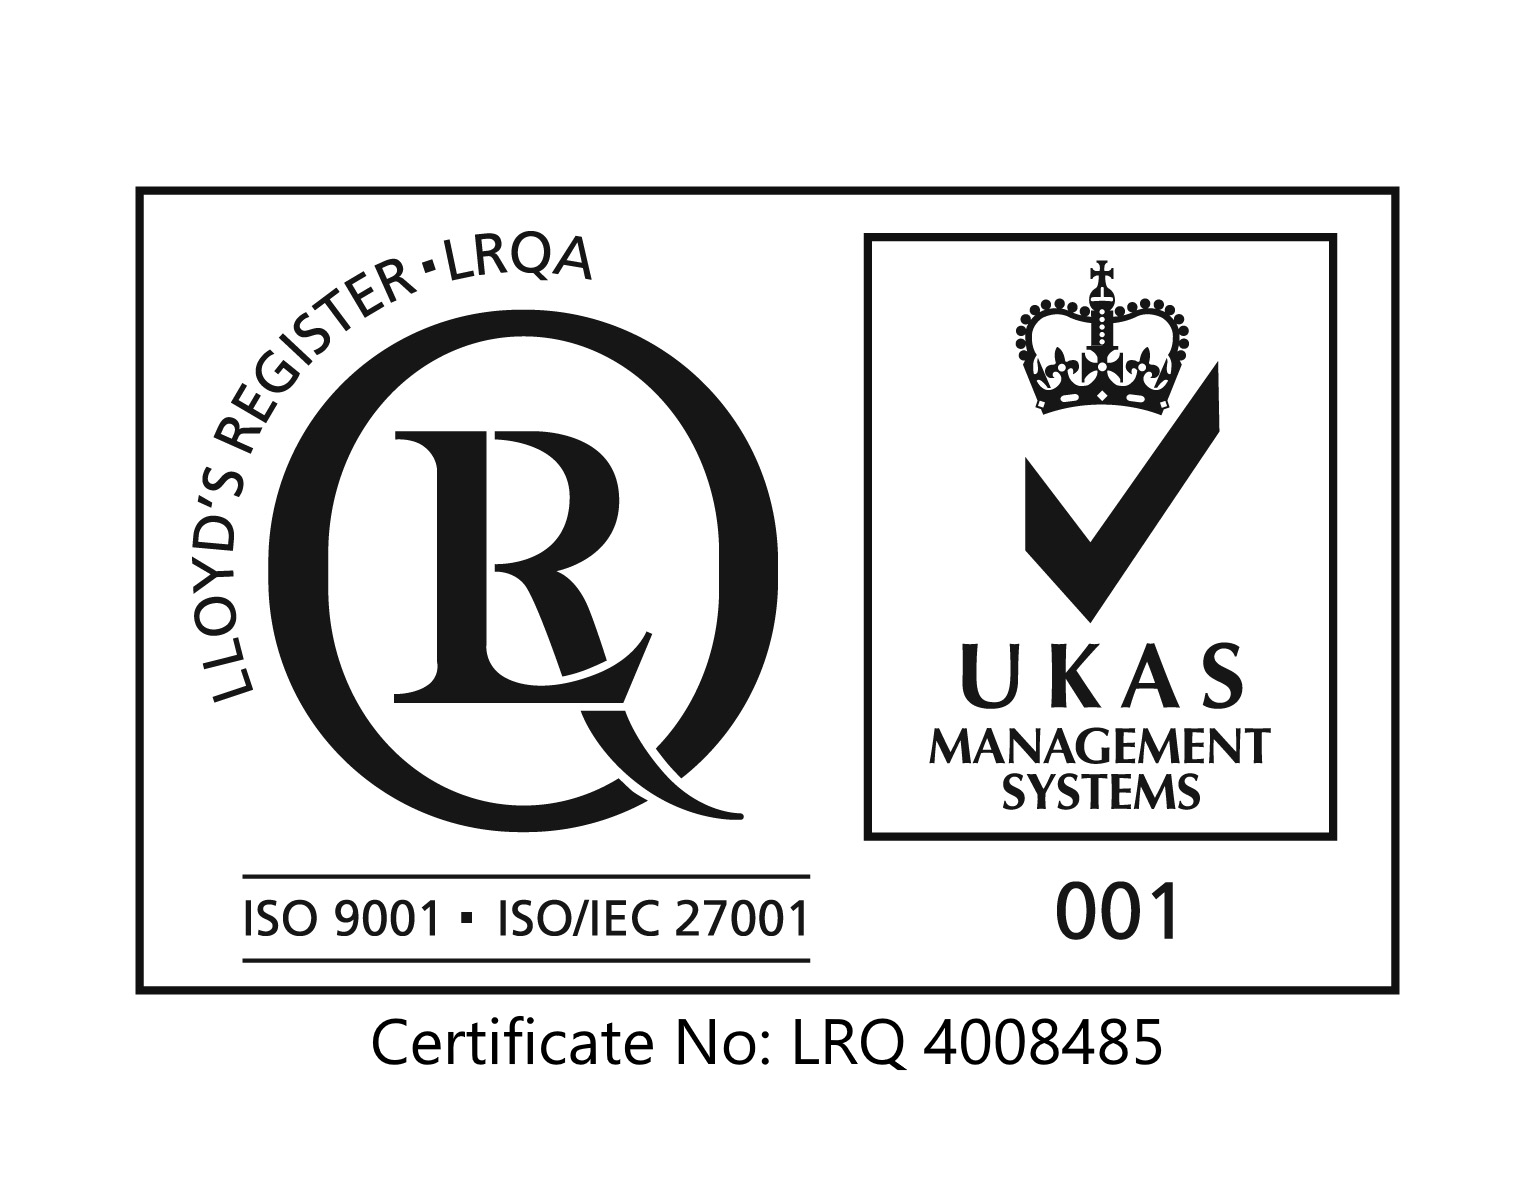 UKAS-Management-Systems-certified